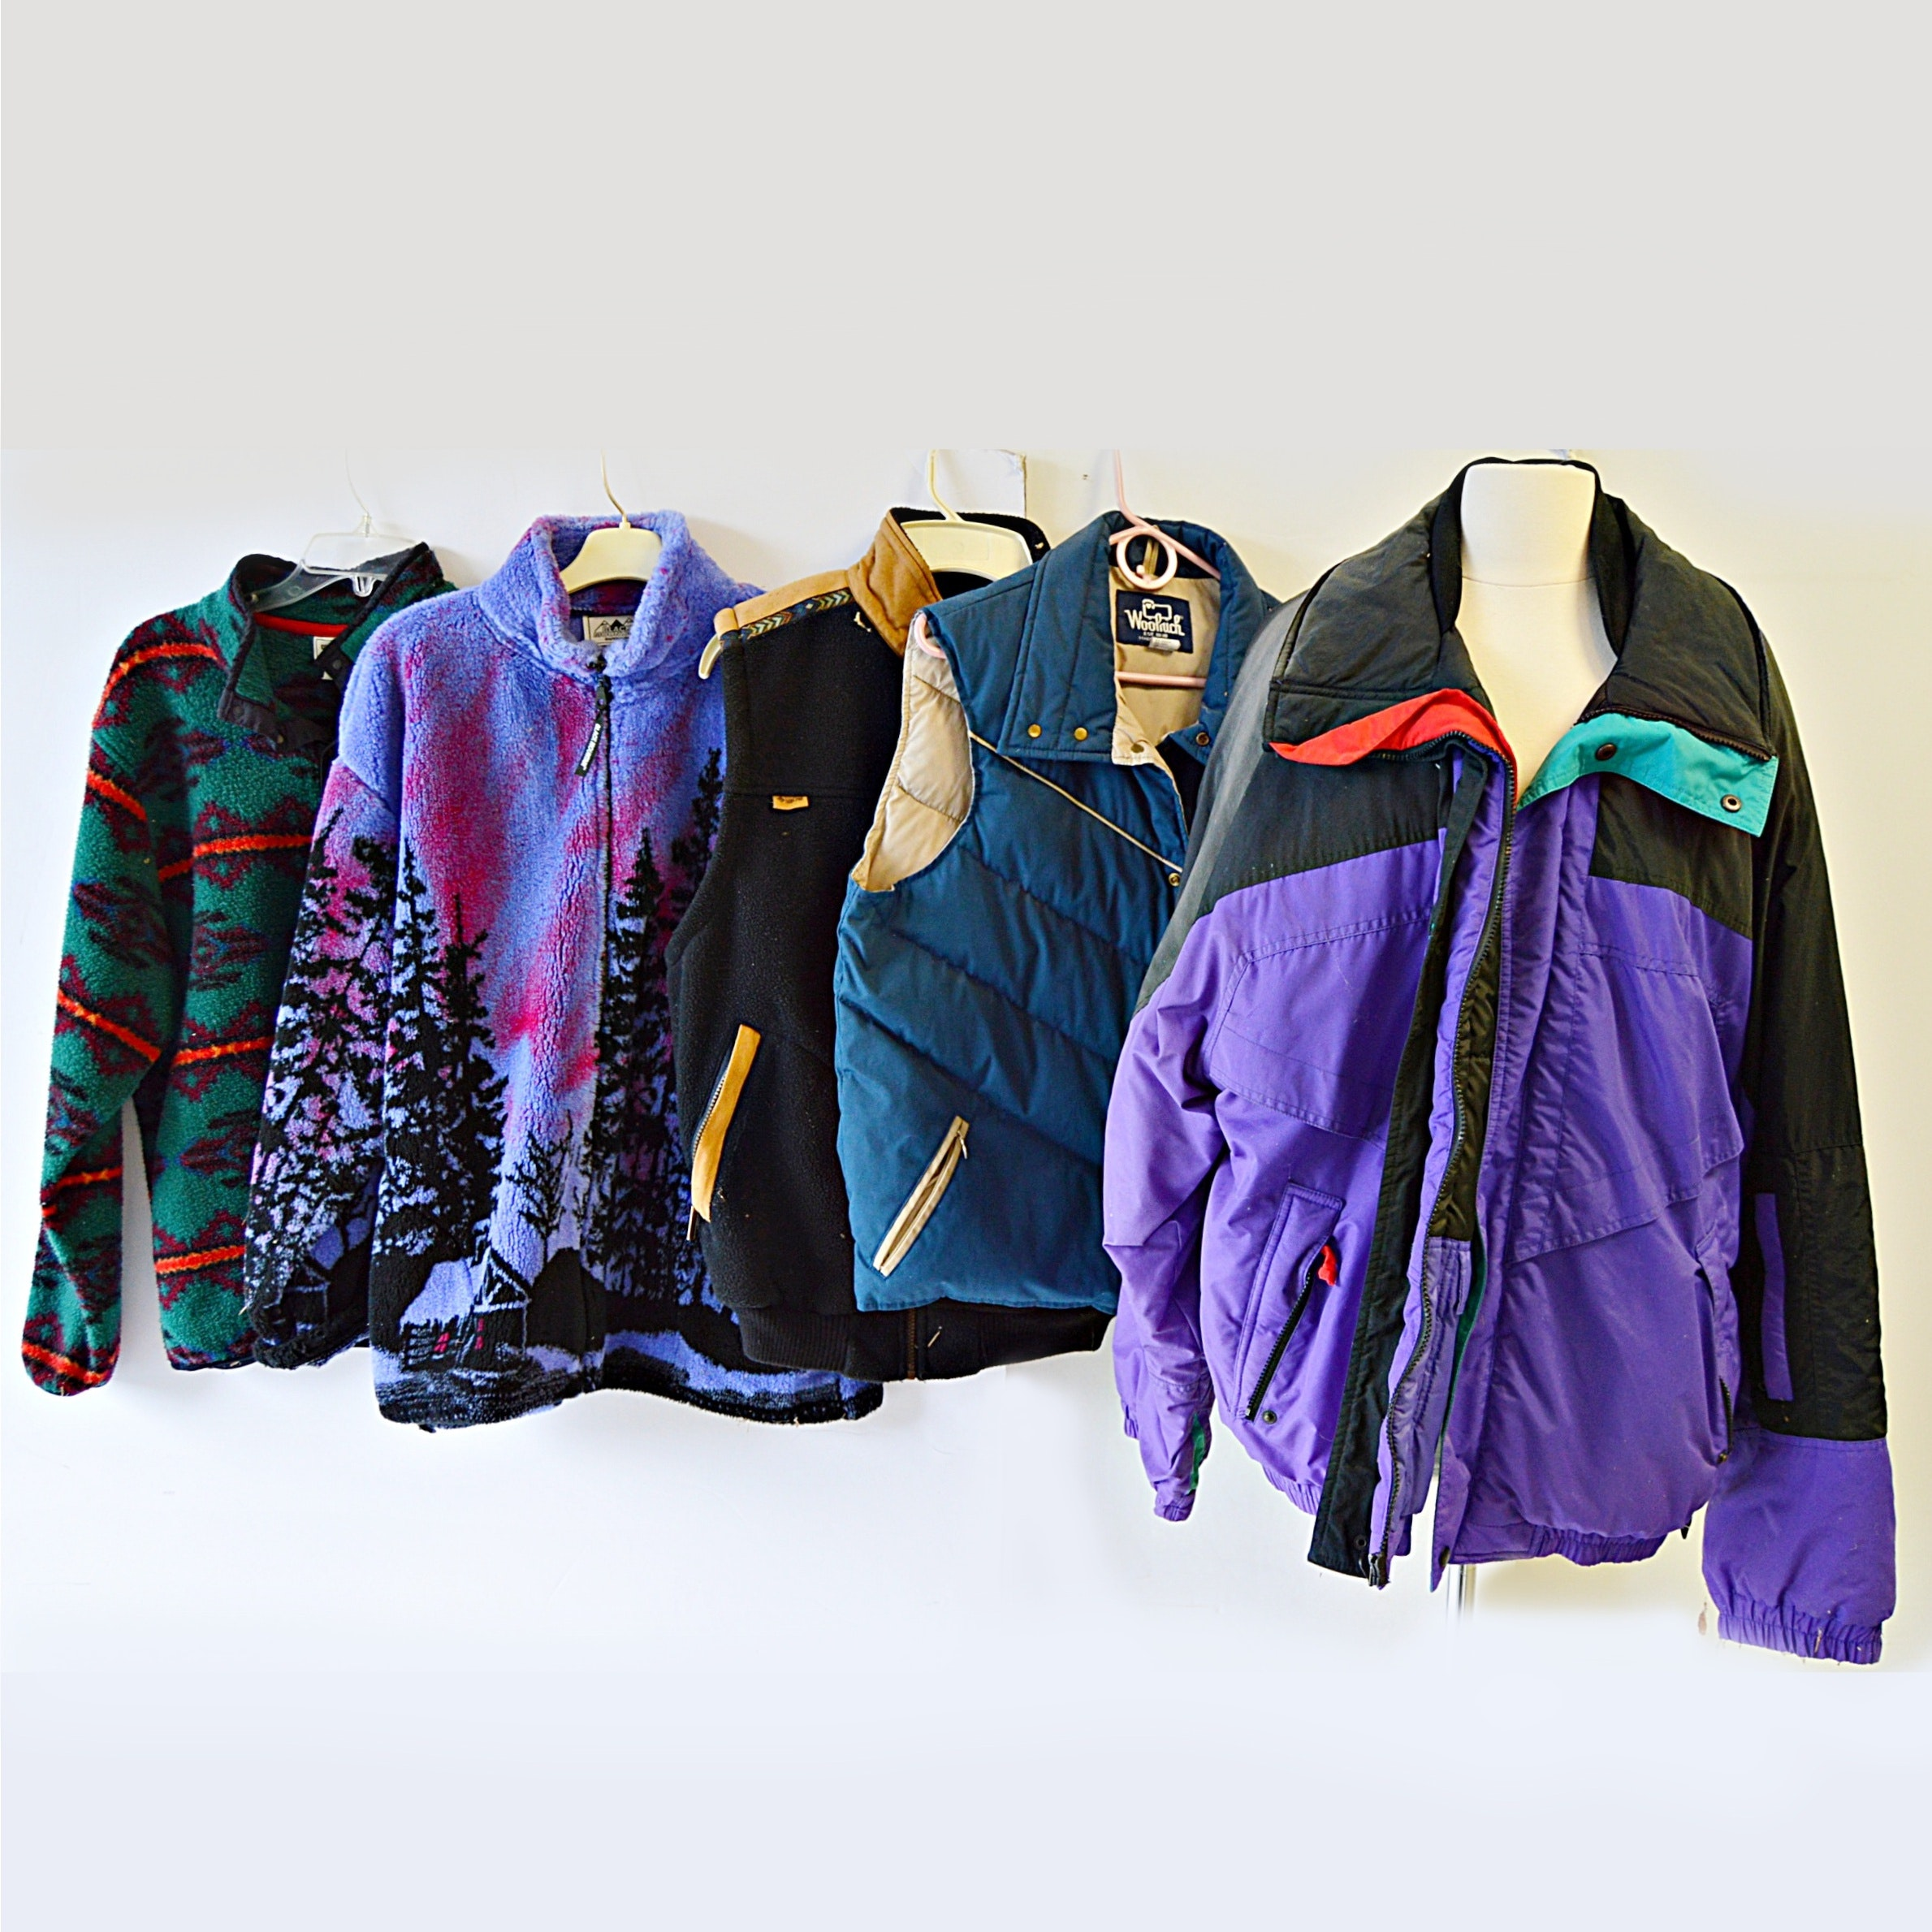 Winter Outerwear with Jacket, Vests and Fleeces